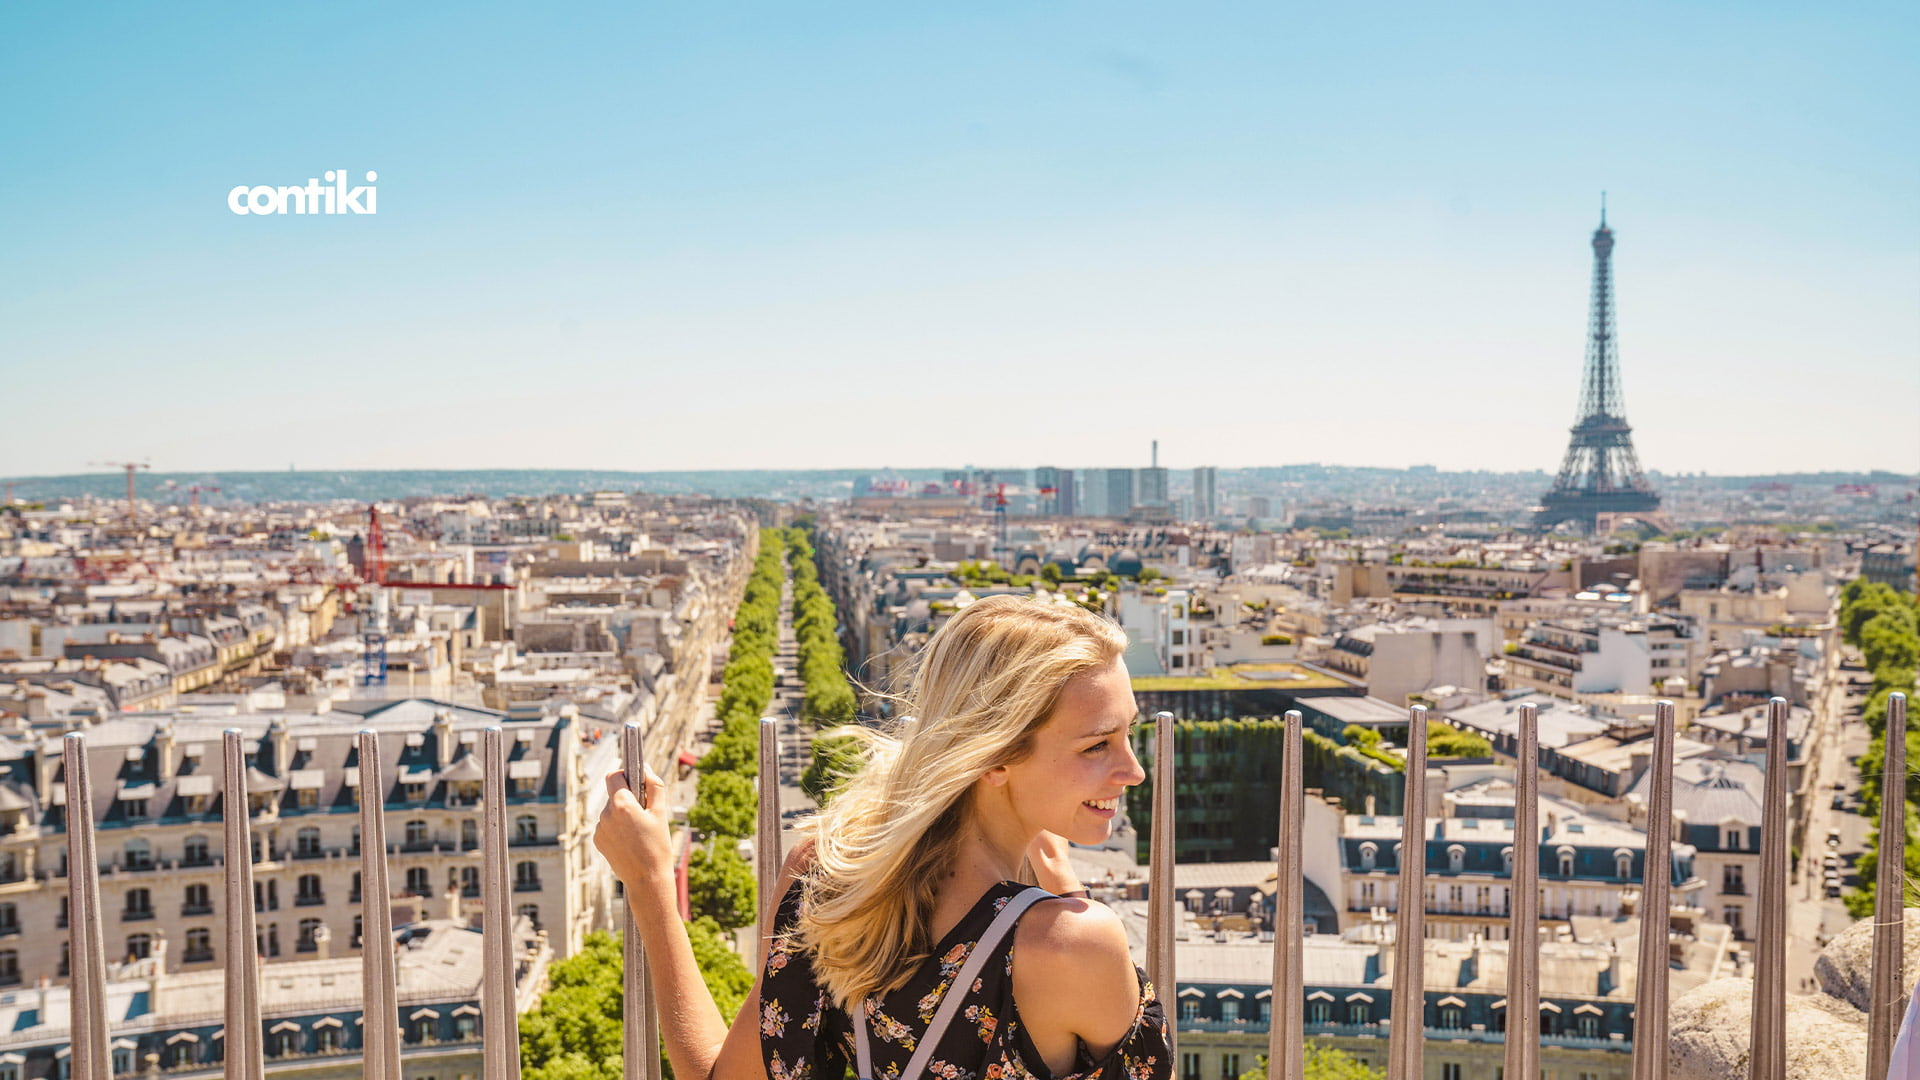 close-up image of a blonde young female traveler admiring Paris from up top